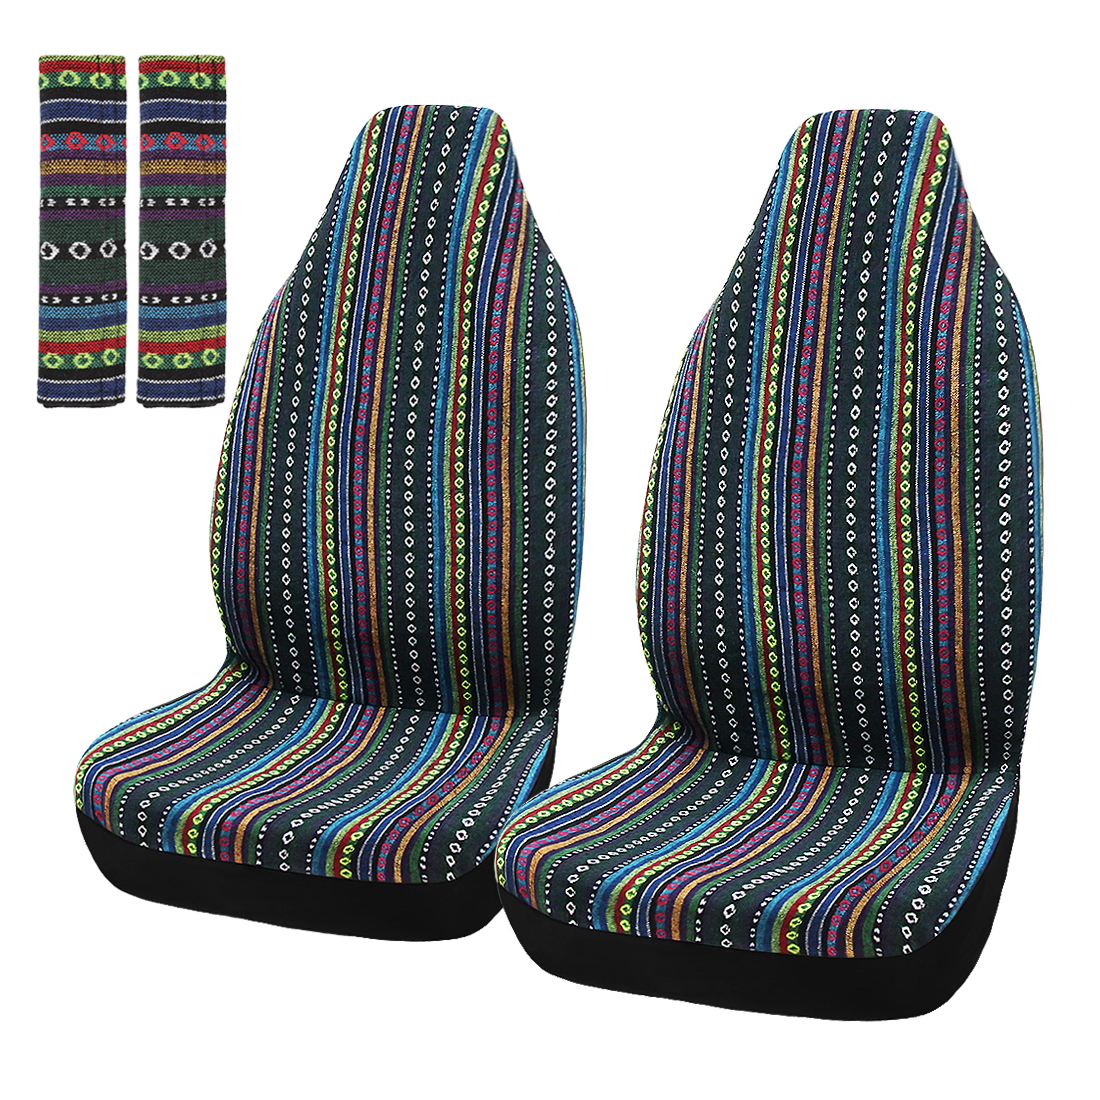 2 Pcs Universal Front Seat Cover Saddle Blanket Seat-Belt Pad Protectors for Car